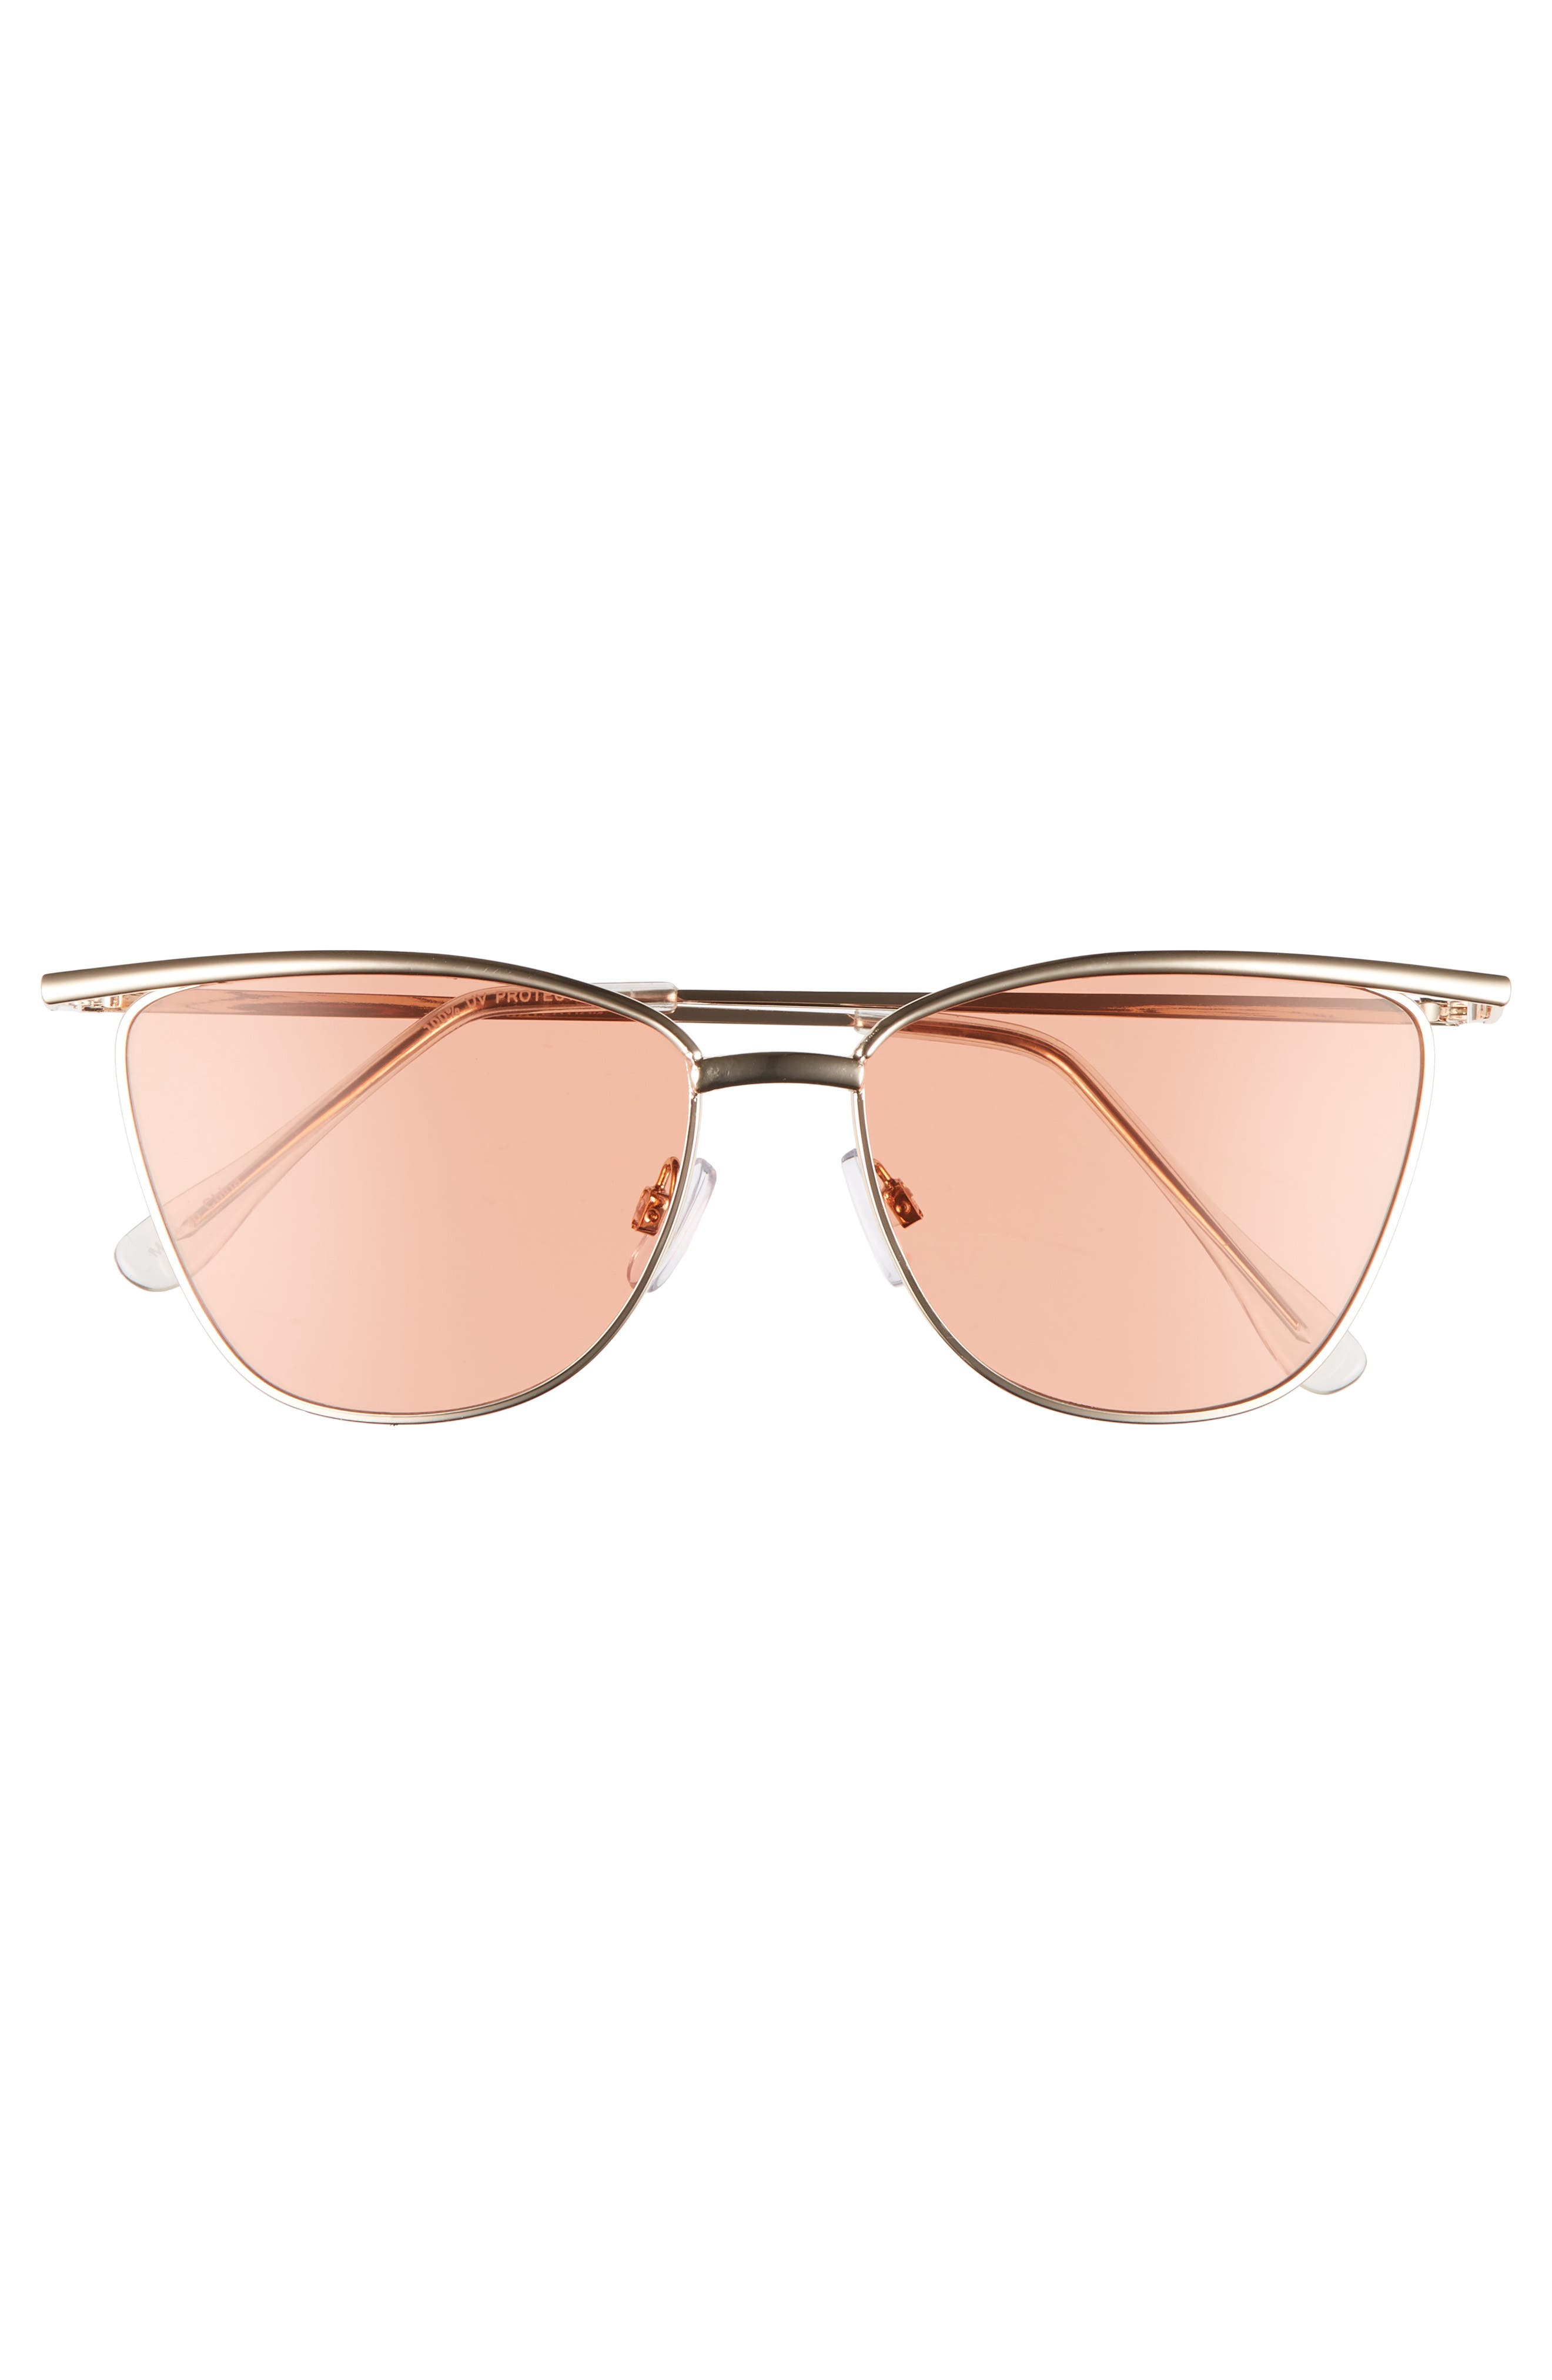 55mm Winged Cat Eye Sunglasses,                             Alternate thumbnail 3, color,                             710